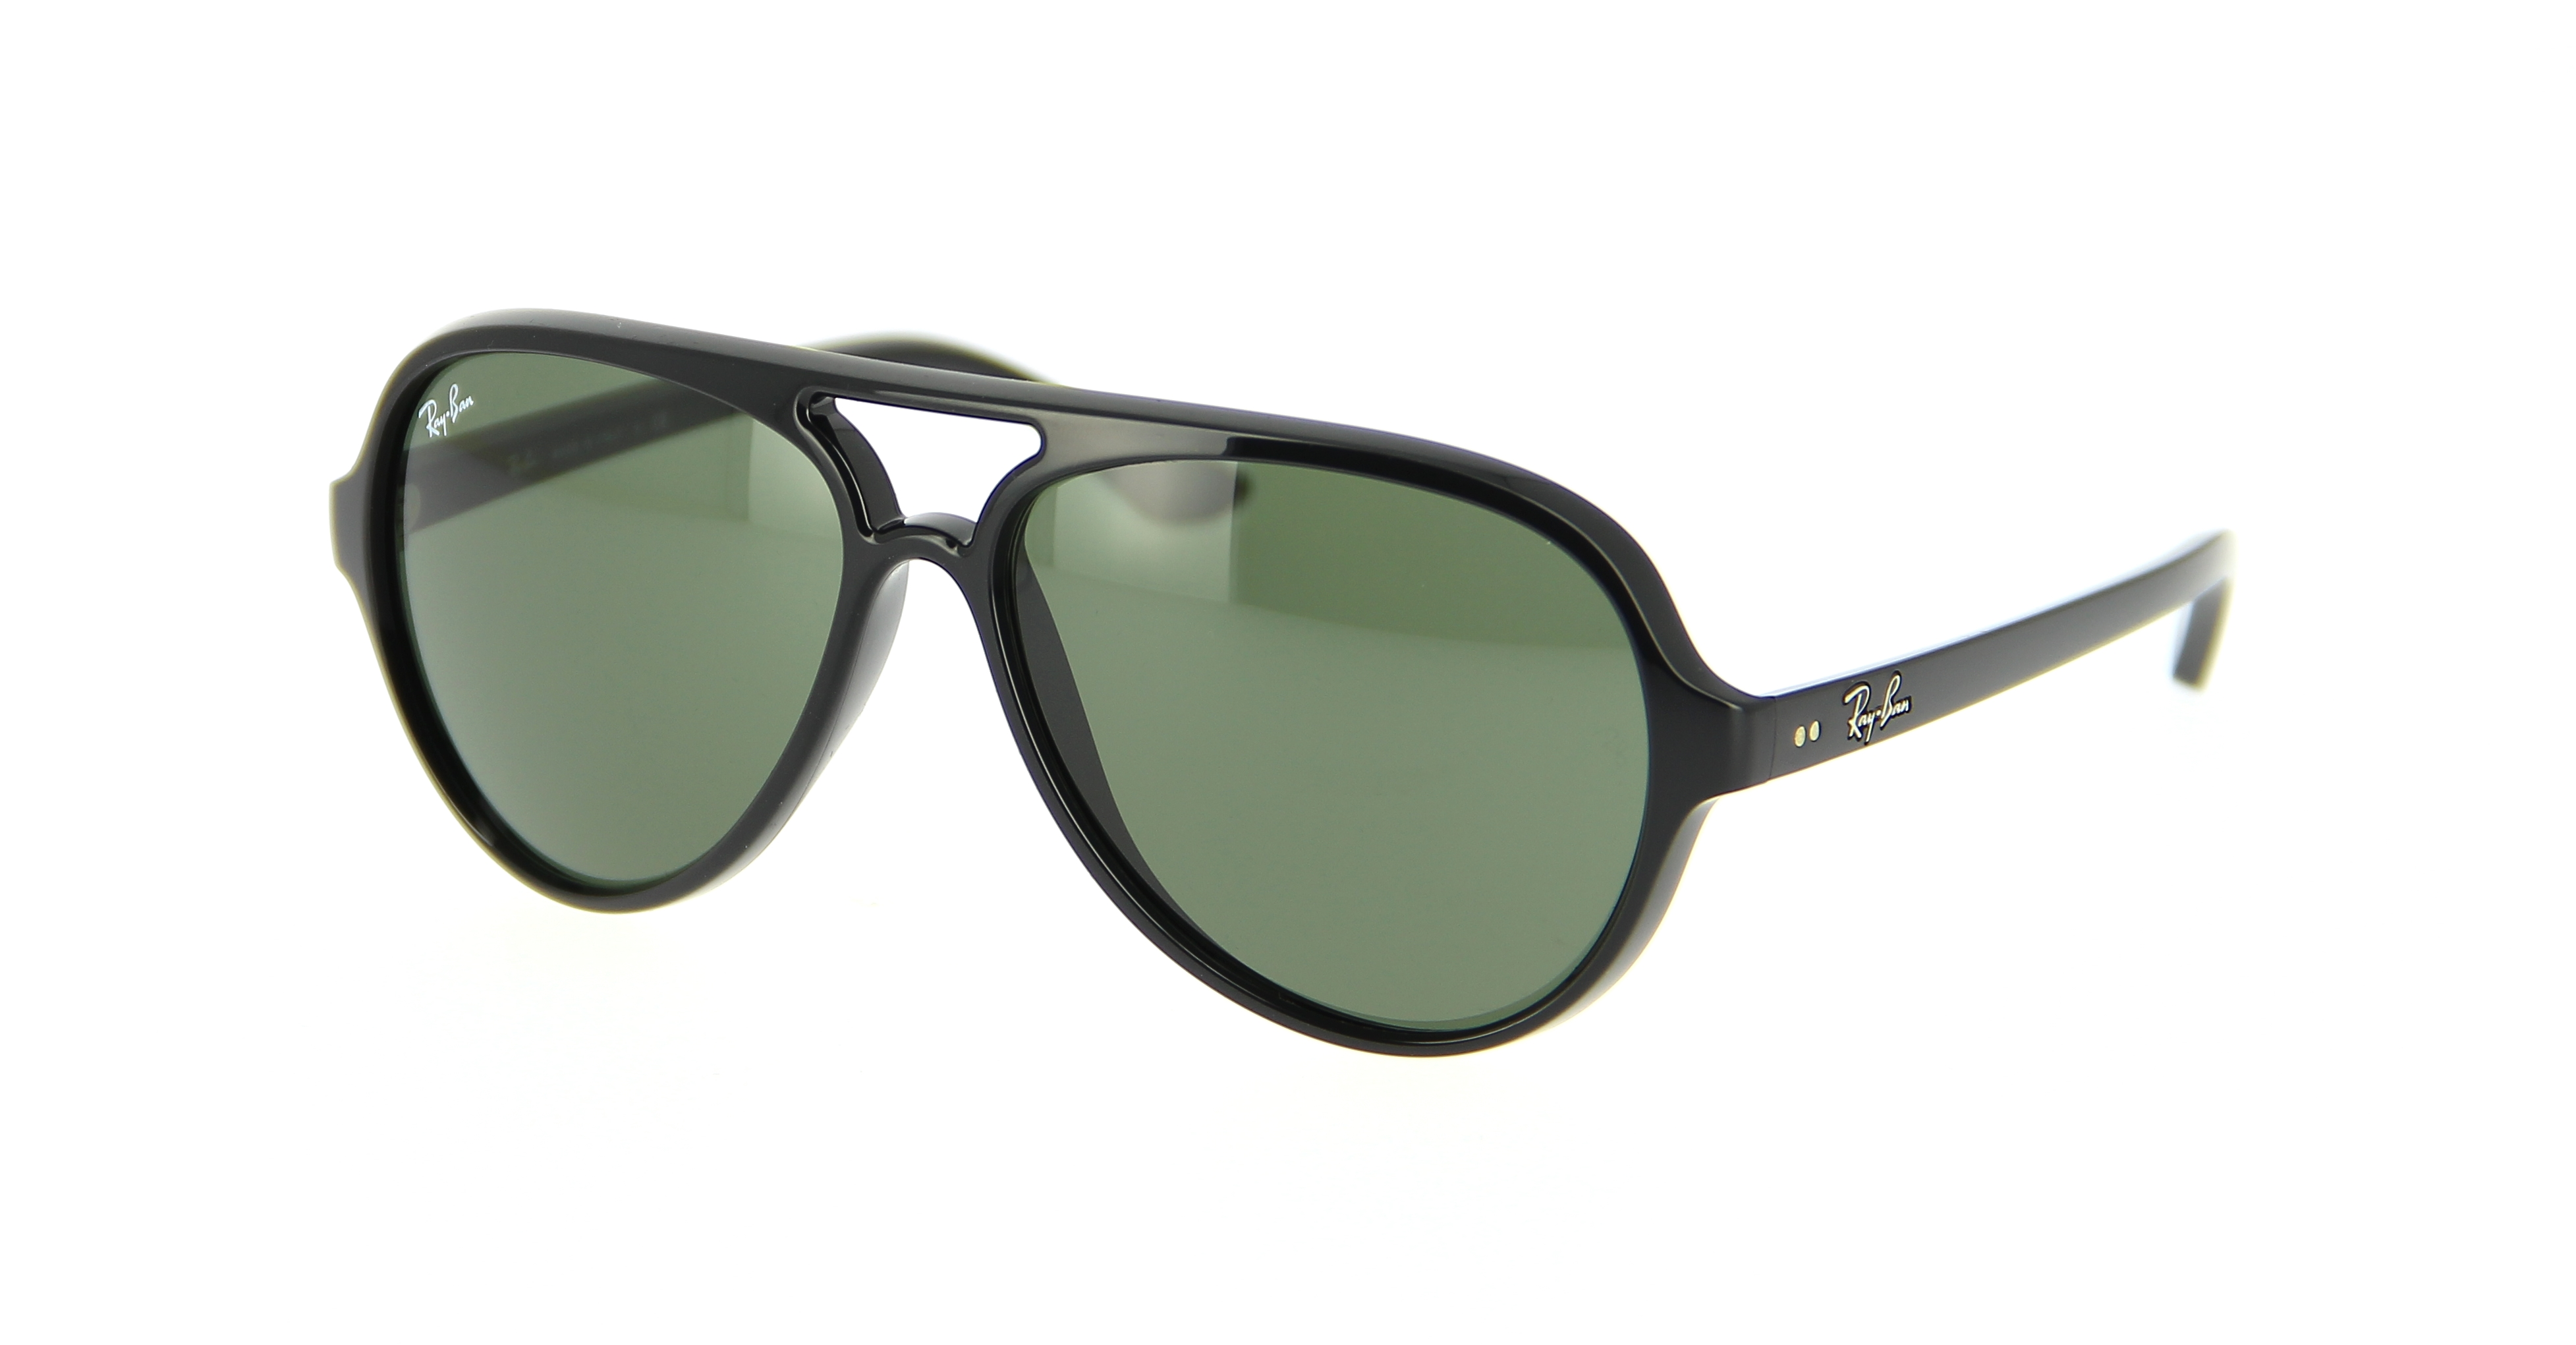 7246416d9d5cc Sunglasses Wayfarer RB 2132 605371 55 18 RAY-BAN. ray ban wayfarer de vue  optical center. optical center ray ban wayfarer 2140. ray ban 4125 optical  center